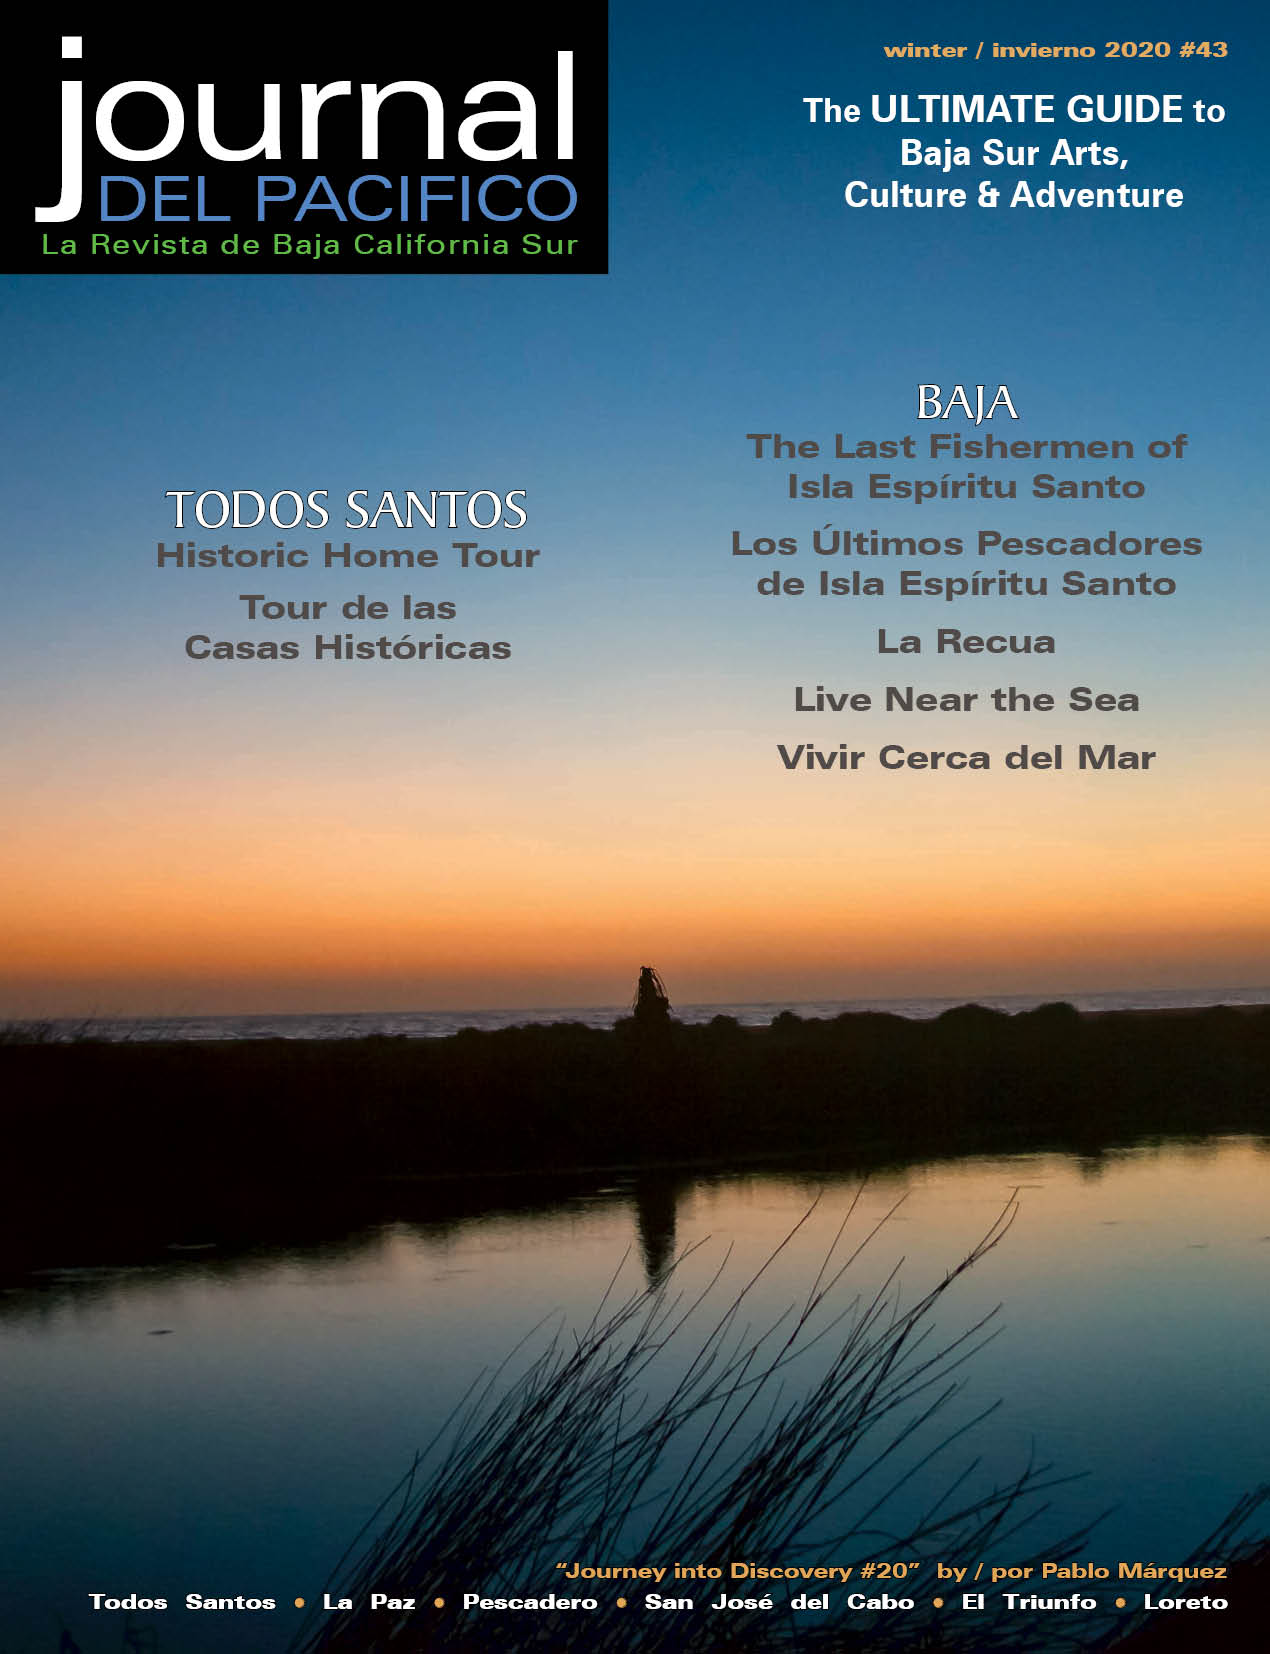 Winter/Invierno 2020 Issue of Journal del Pacifico